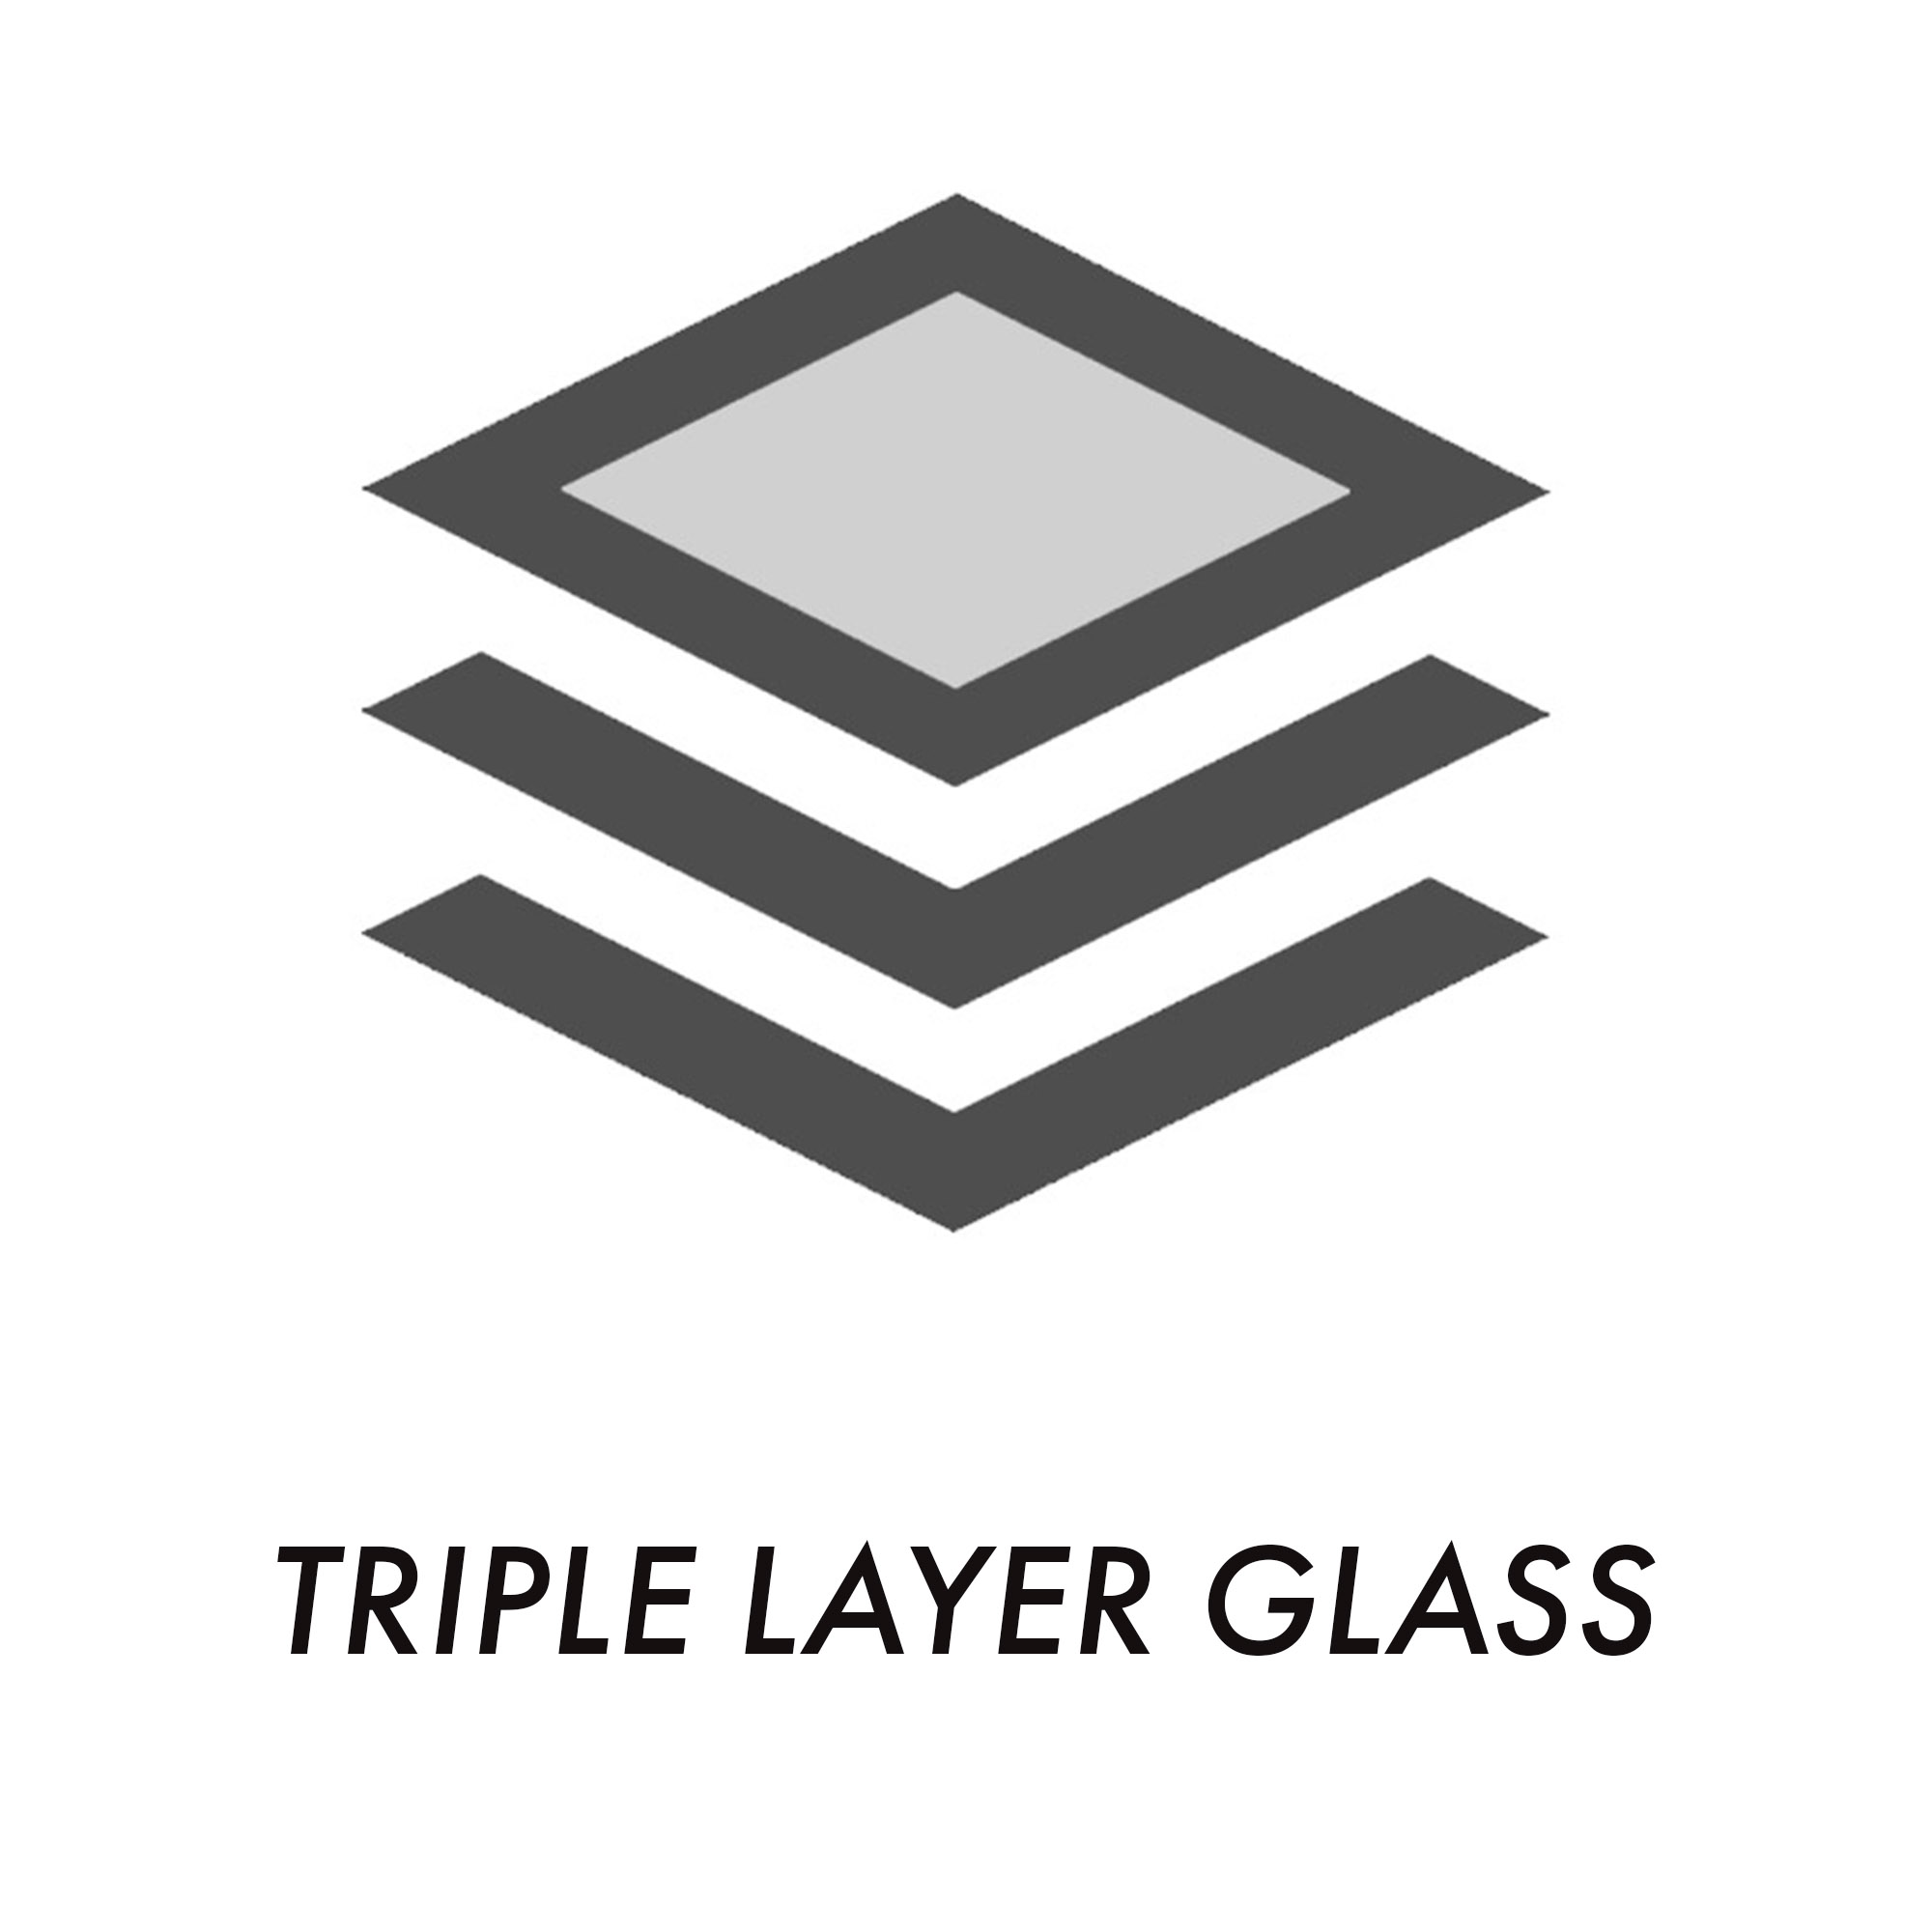 triplelayerglass-text.jpg